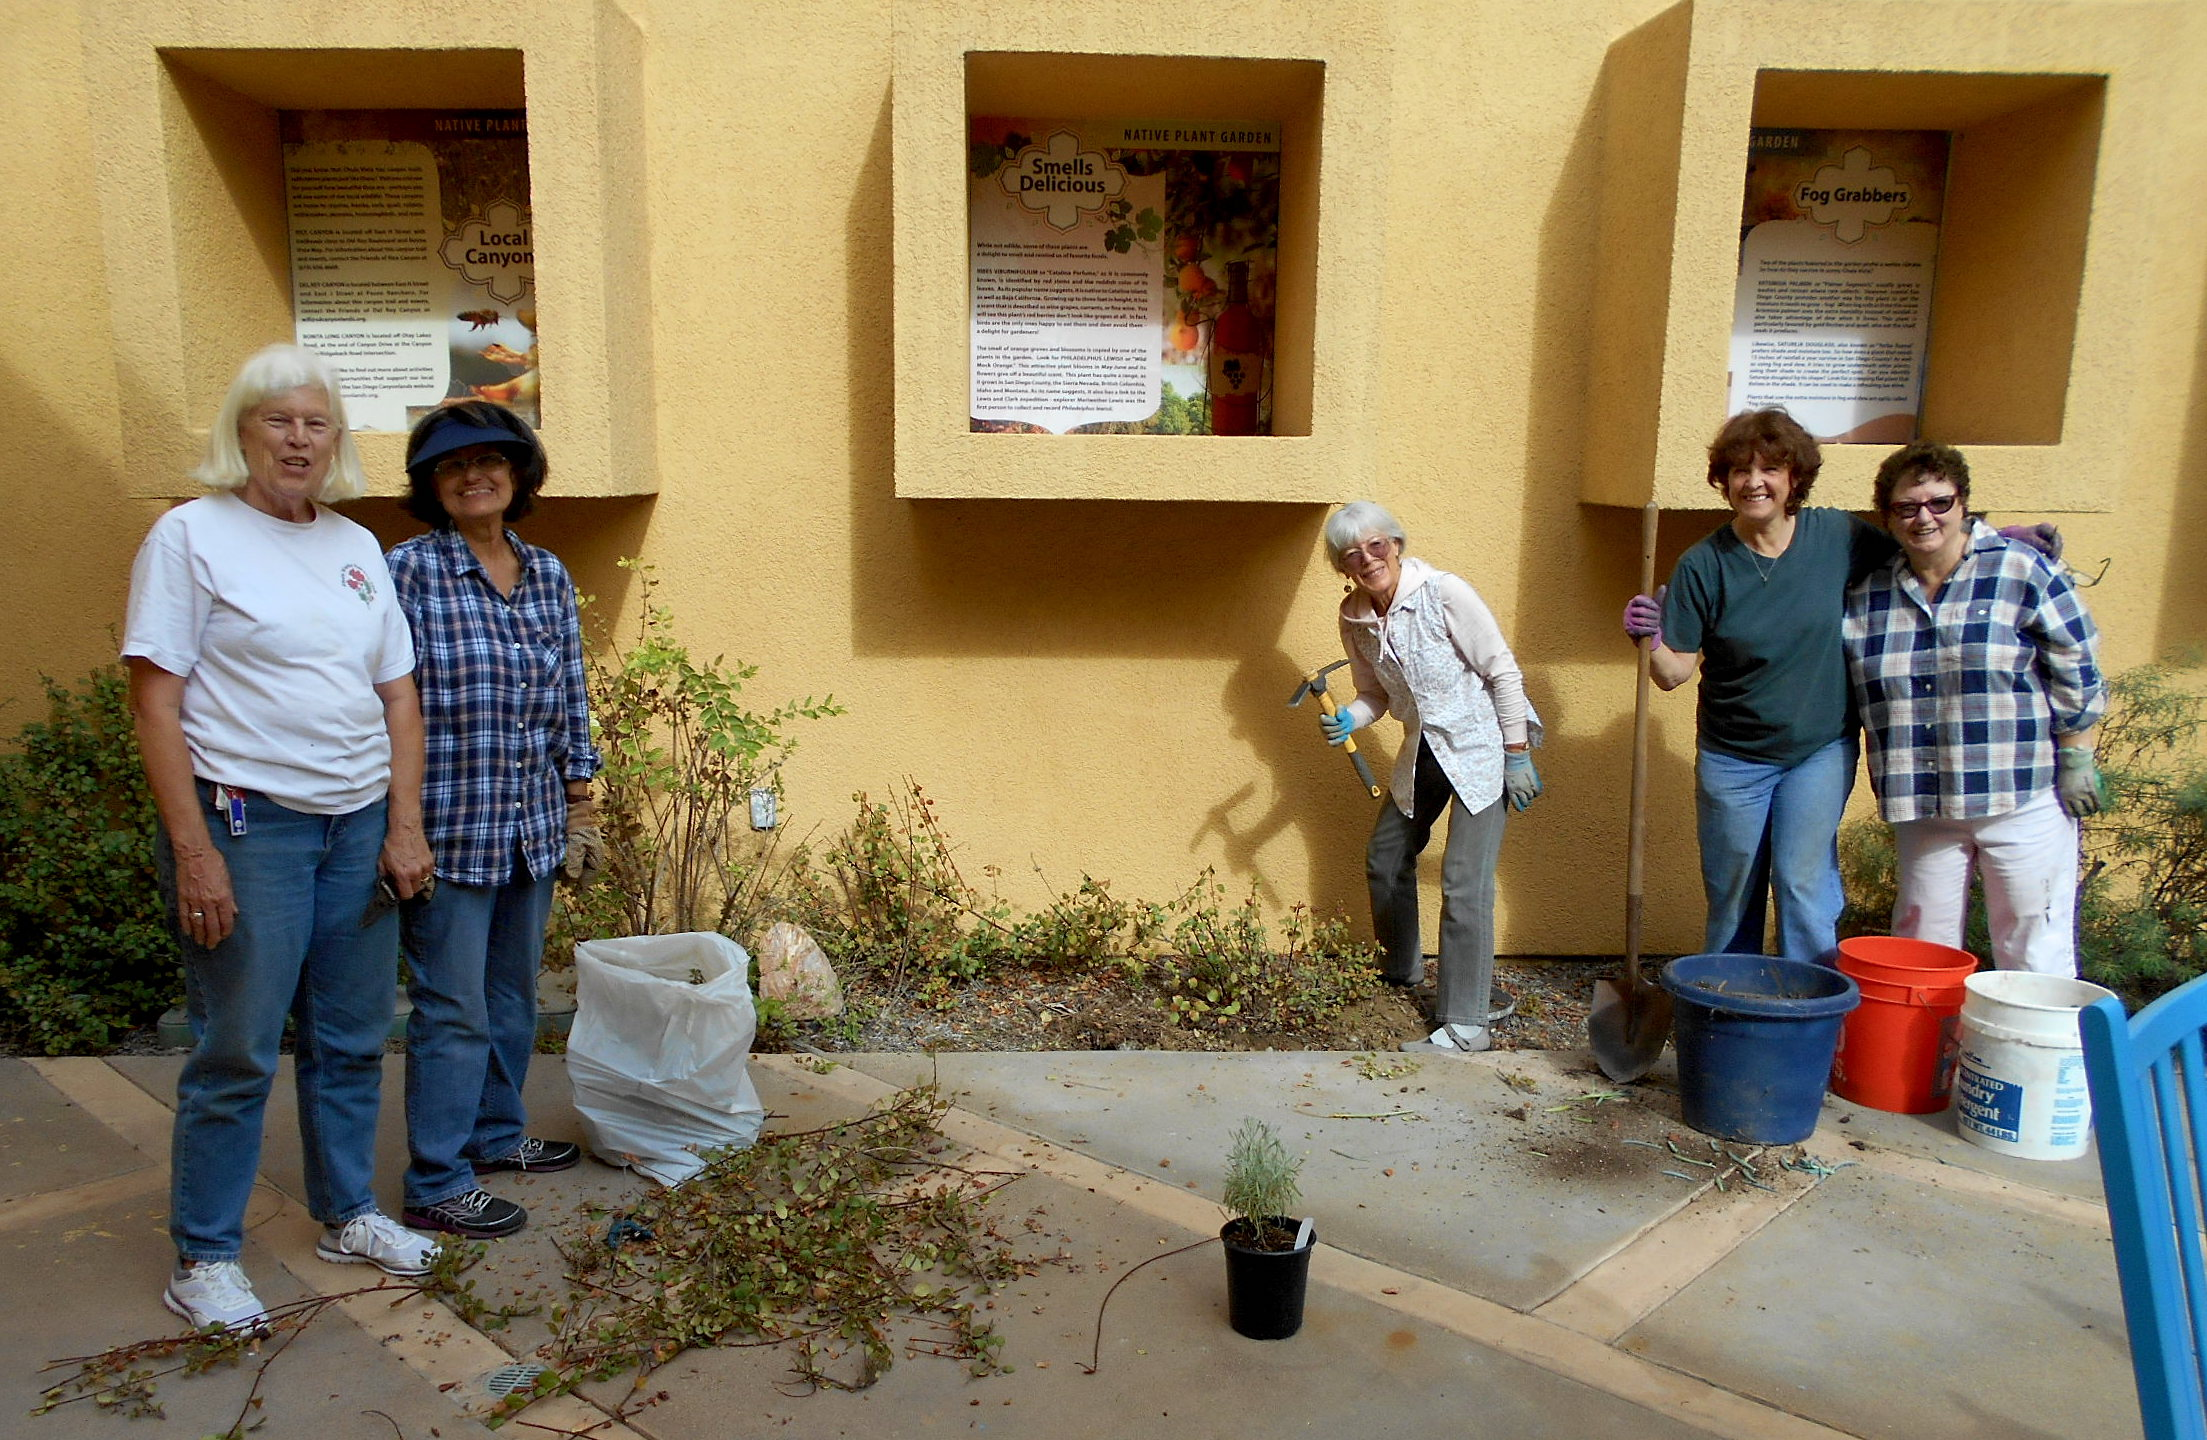 (L to R): Chris, Betty, Kay, Joan, and Emily plant and primp. The boxes over the plants have beautiful information posters.